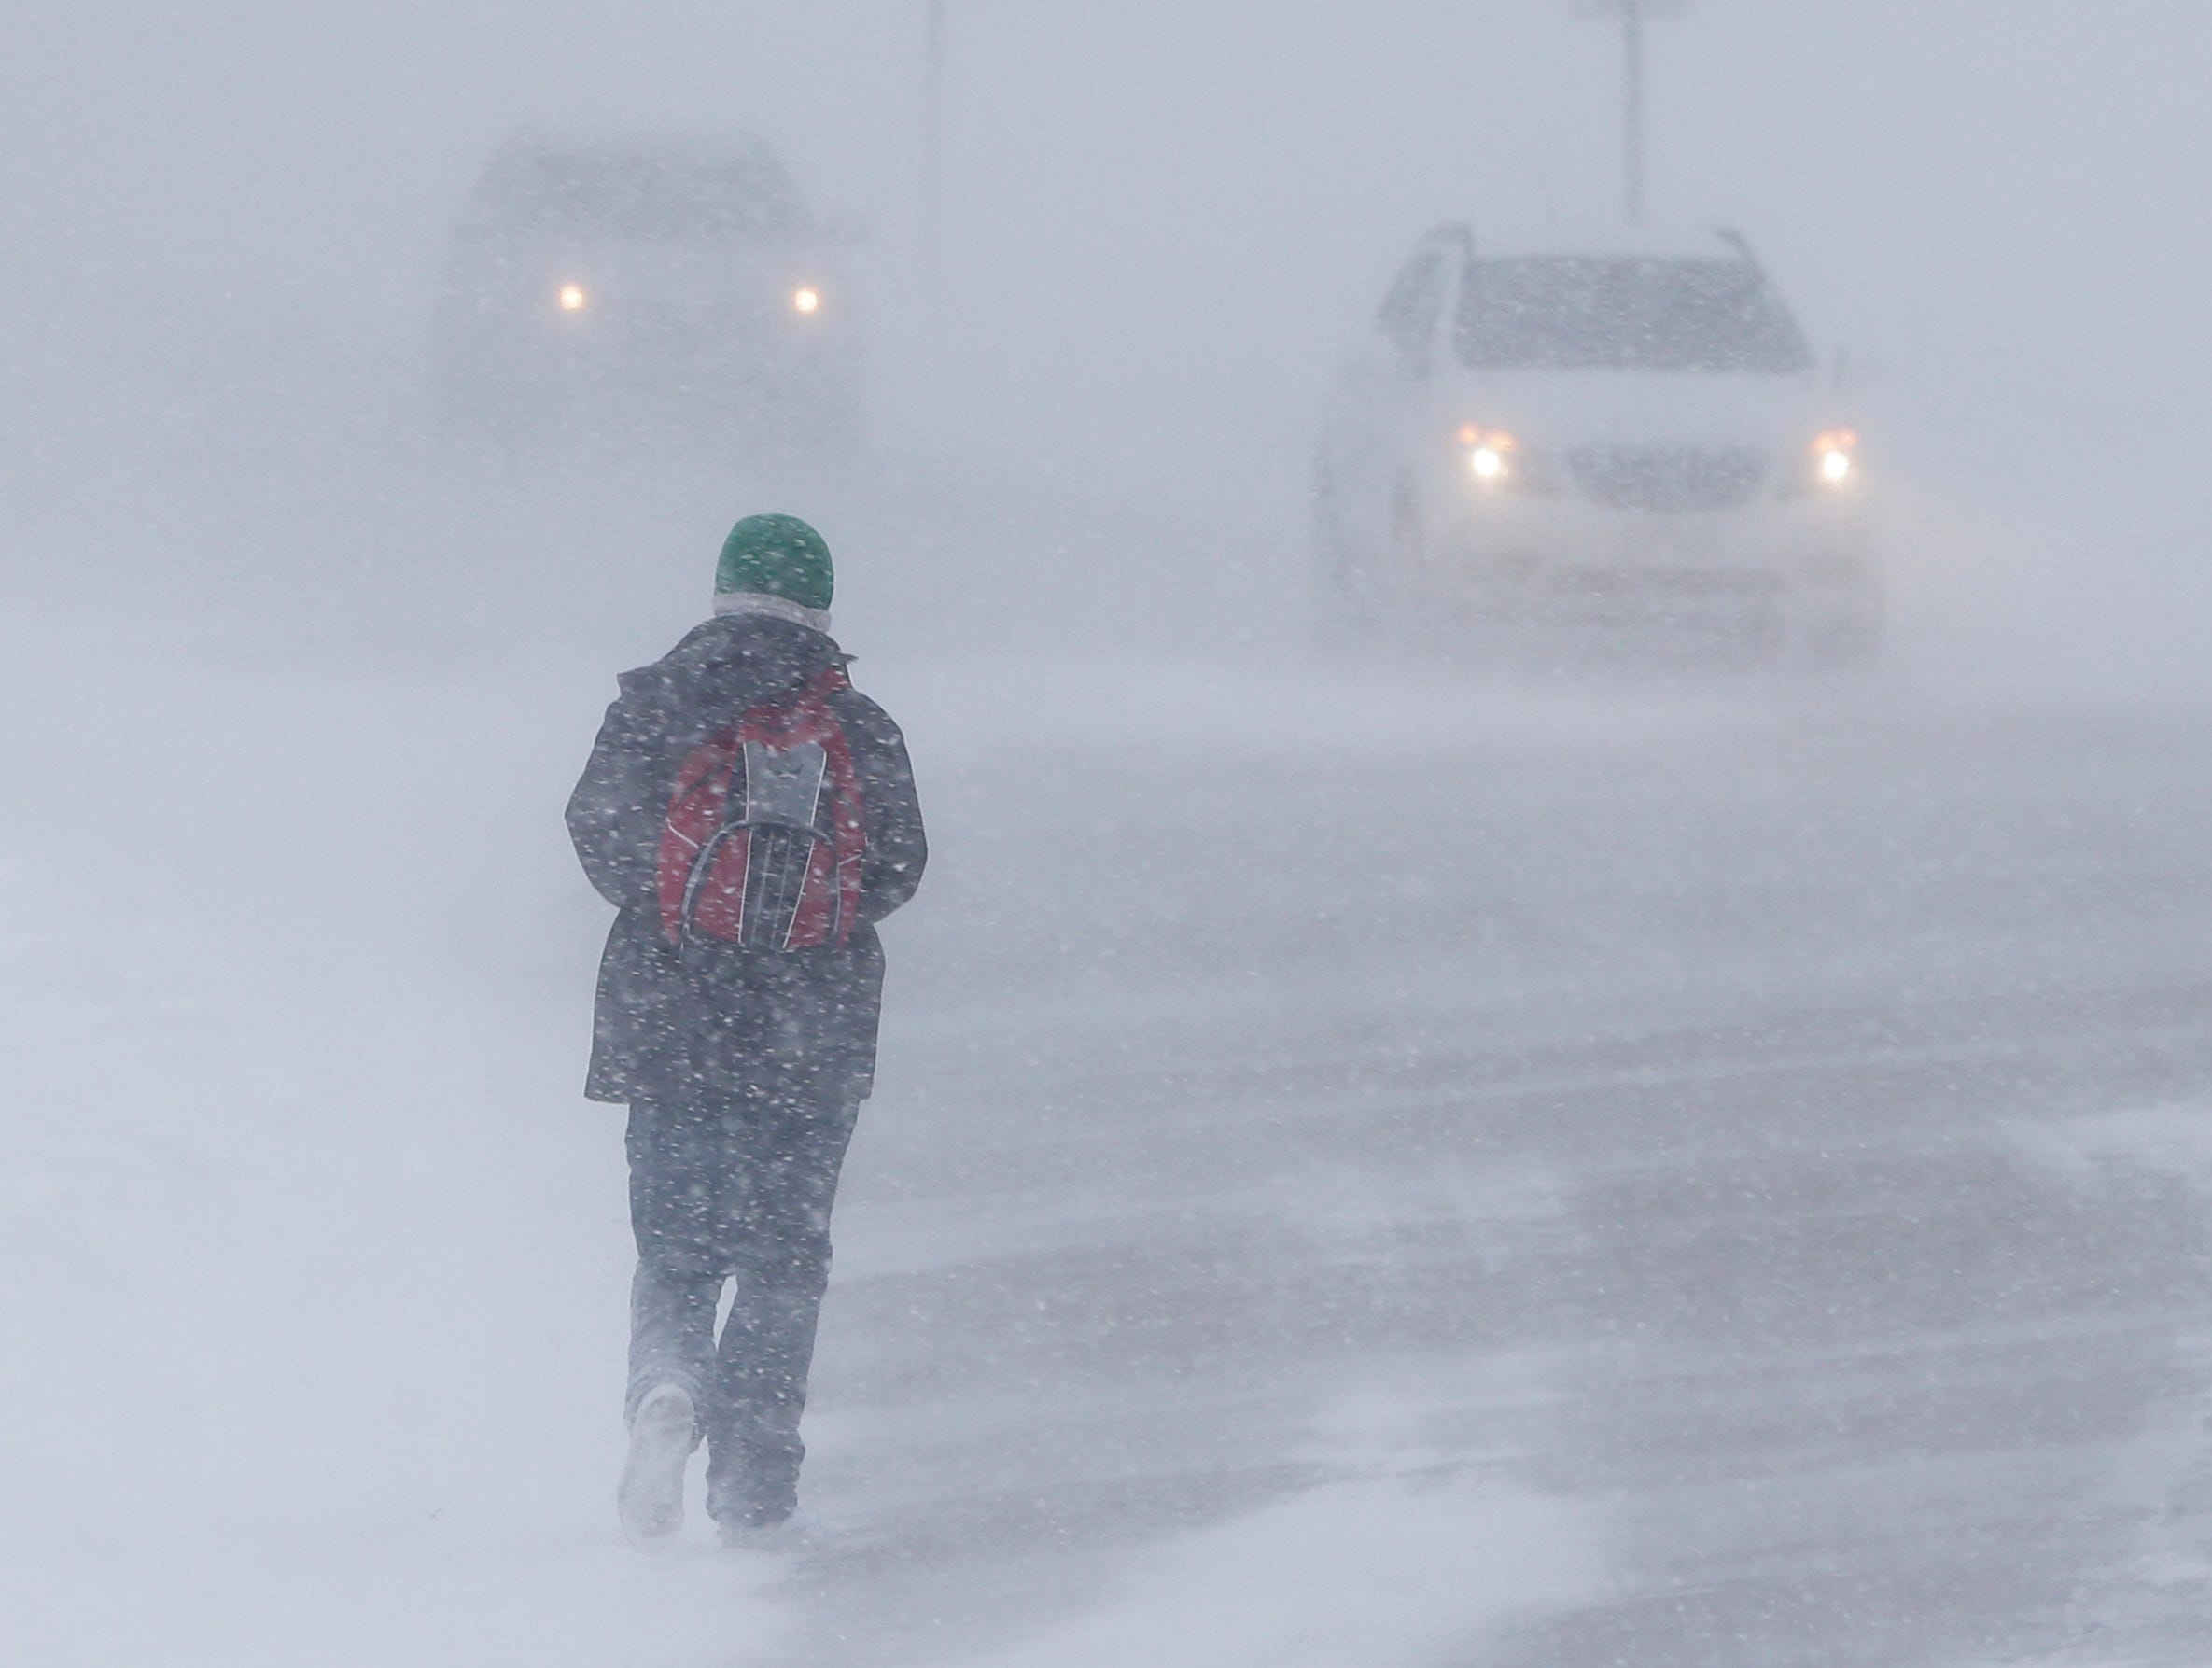 A pedestrian walks north on Maritime Drive near Lake Michigan in whiteout conditions during a snowstorm Monday, Jan. 28, 2019, in Manitowoc, Wis.